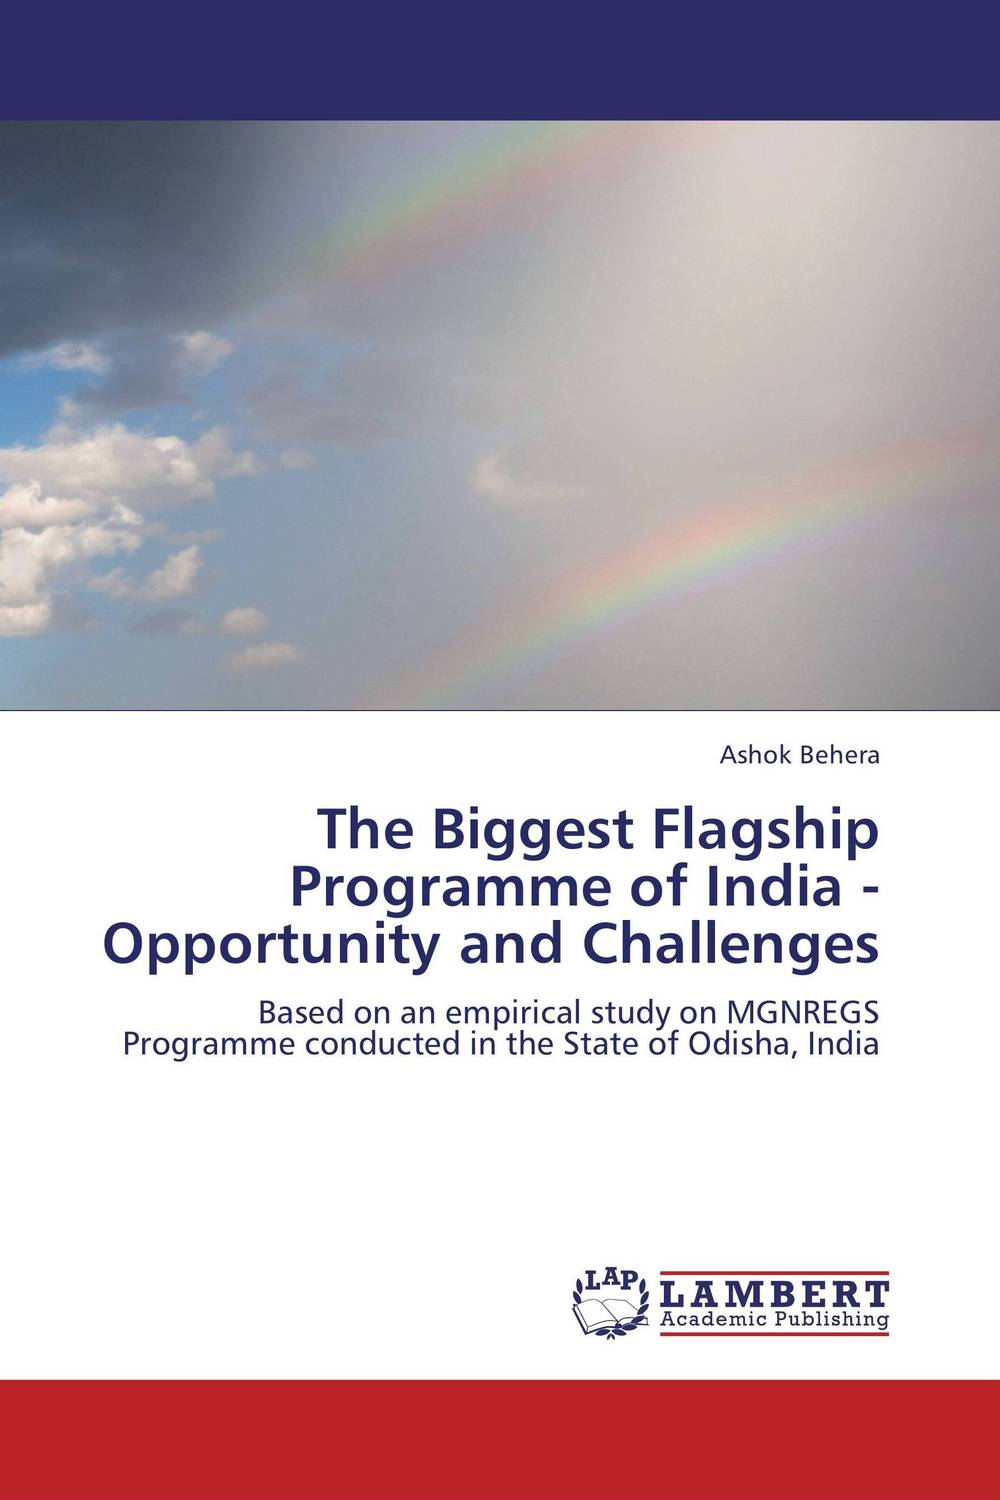 The Biggest Flagship Programme of India - Opportunity and Challenges салфетки heart of india 200 5